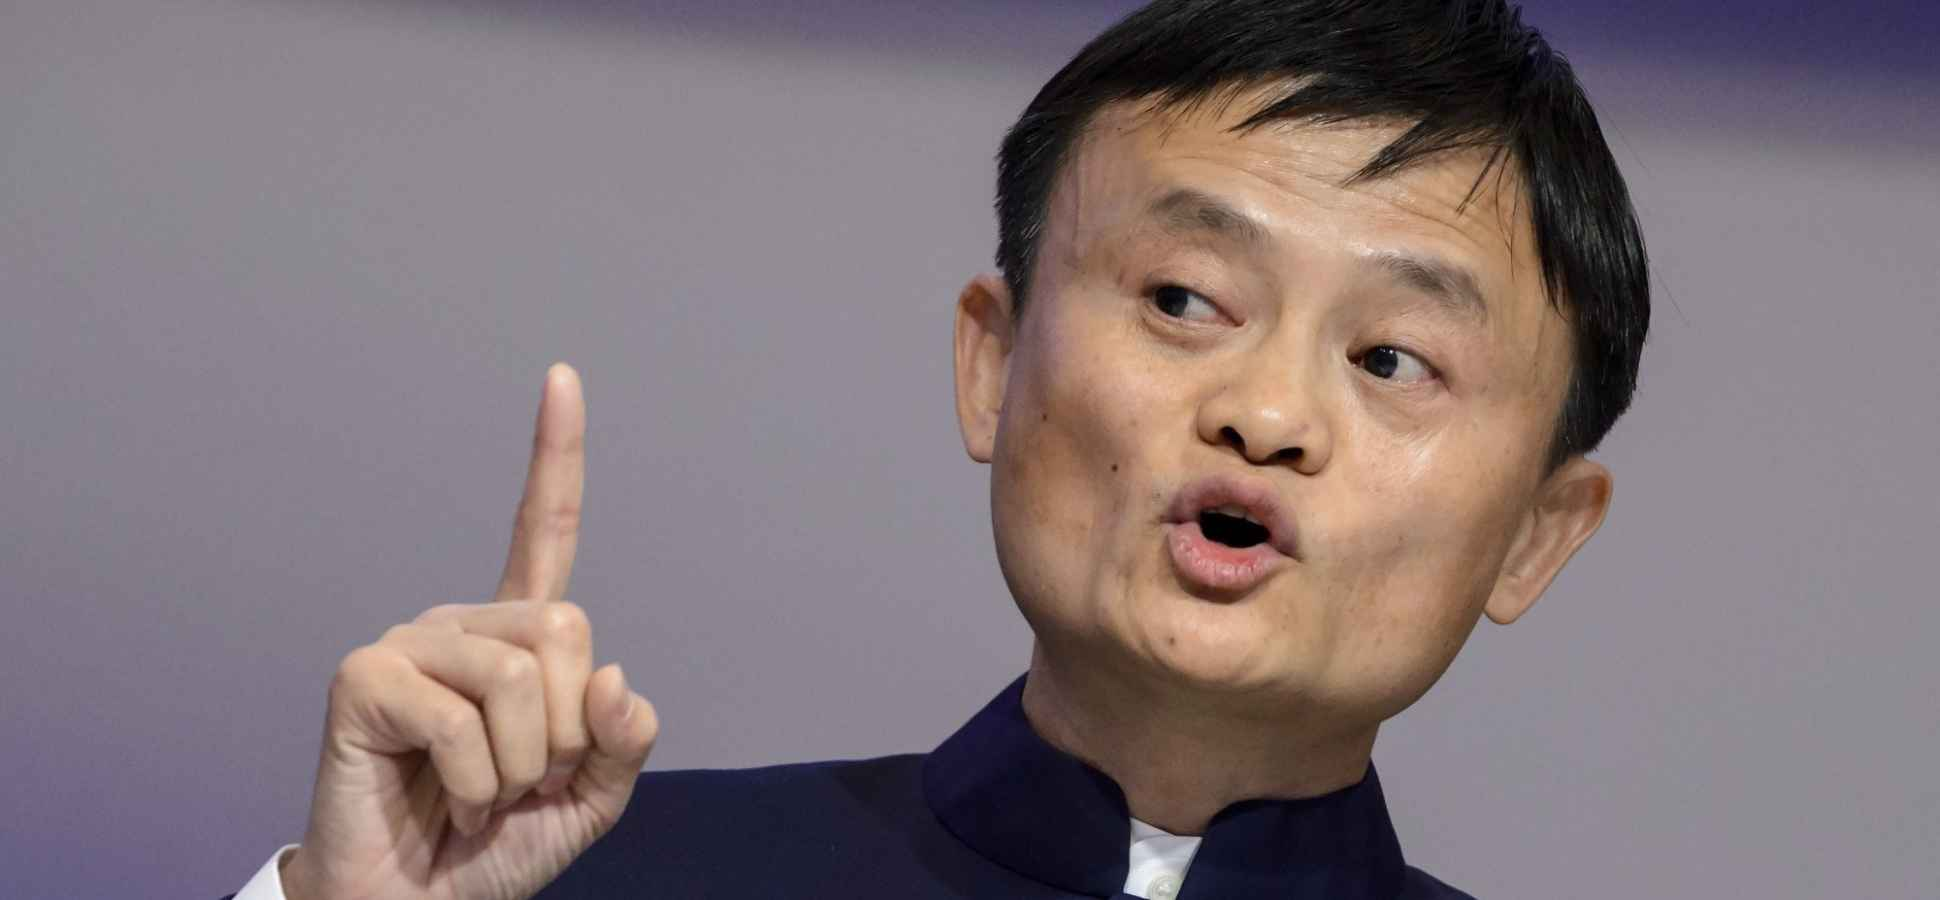 Self-Made Billionaire Jack Ma Says You'll Need This 1 Rare Skill to Succeed in the Age of Machines